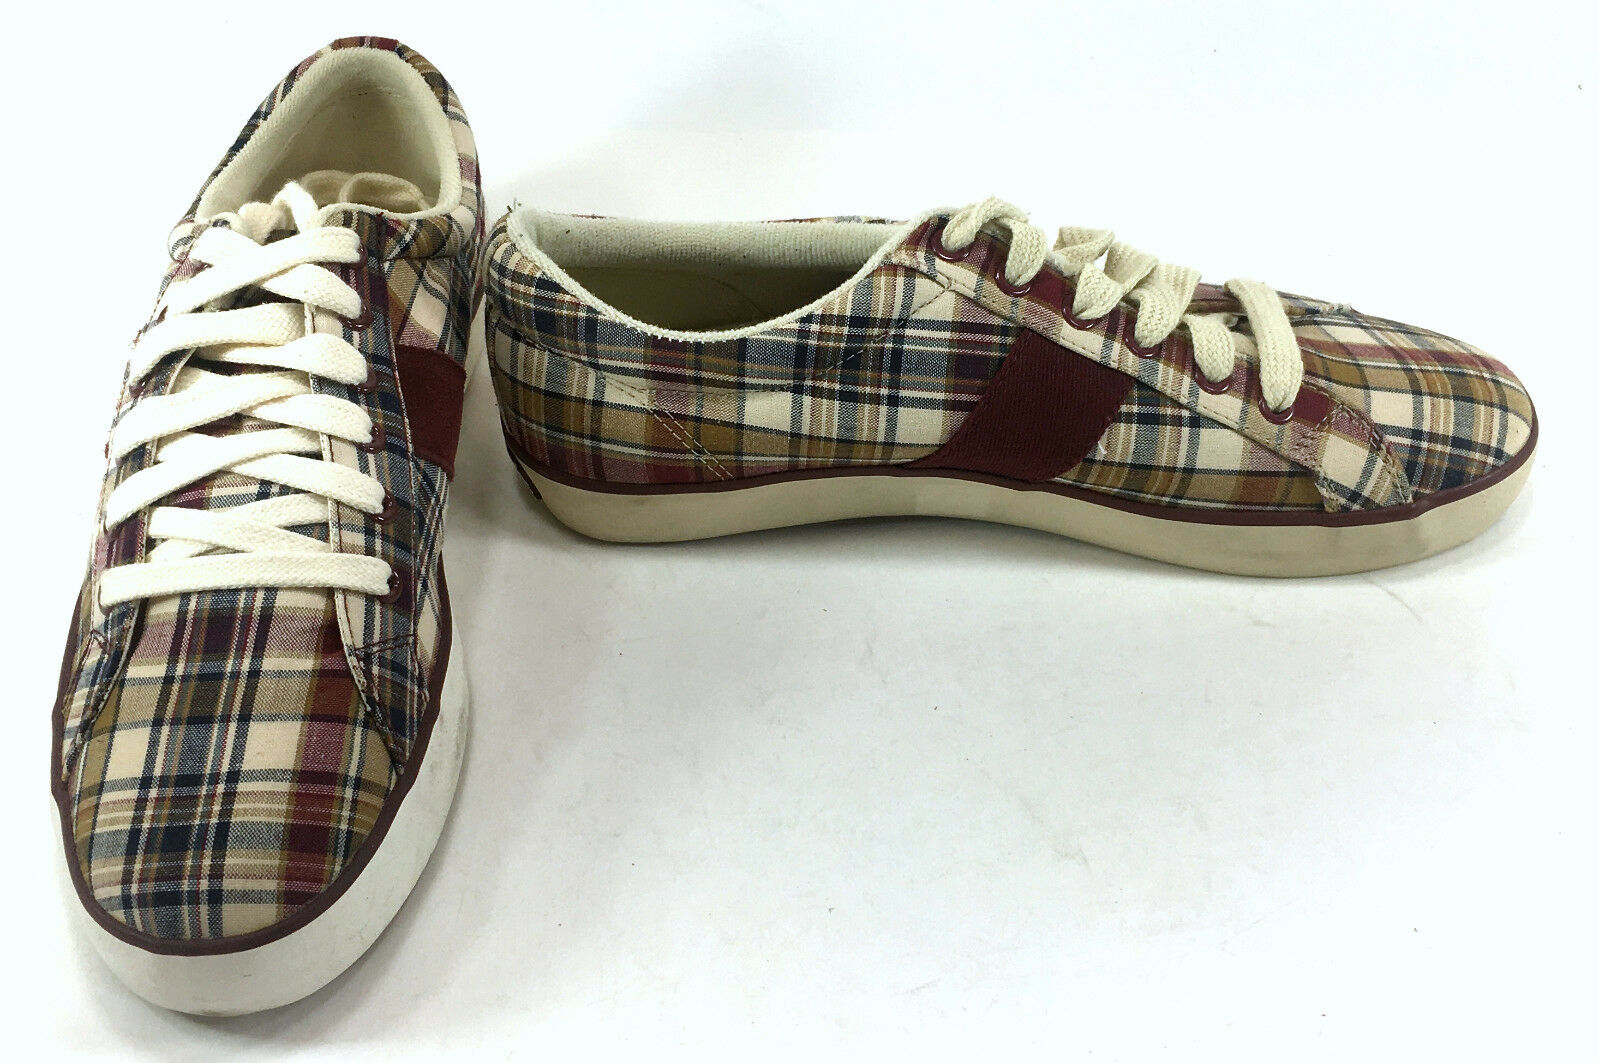 Polo Ralph Lauren Shoes Harold Madras Plaid Multi-Colored Red  Size 8.5